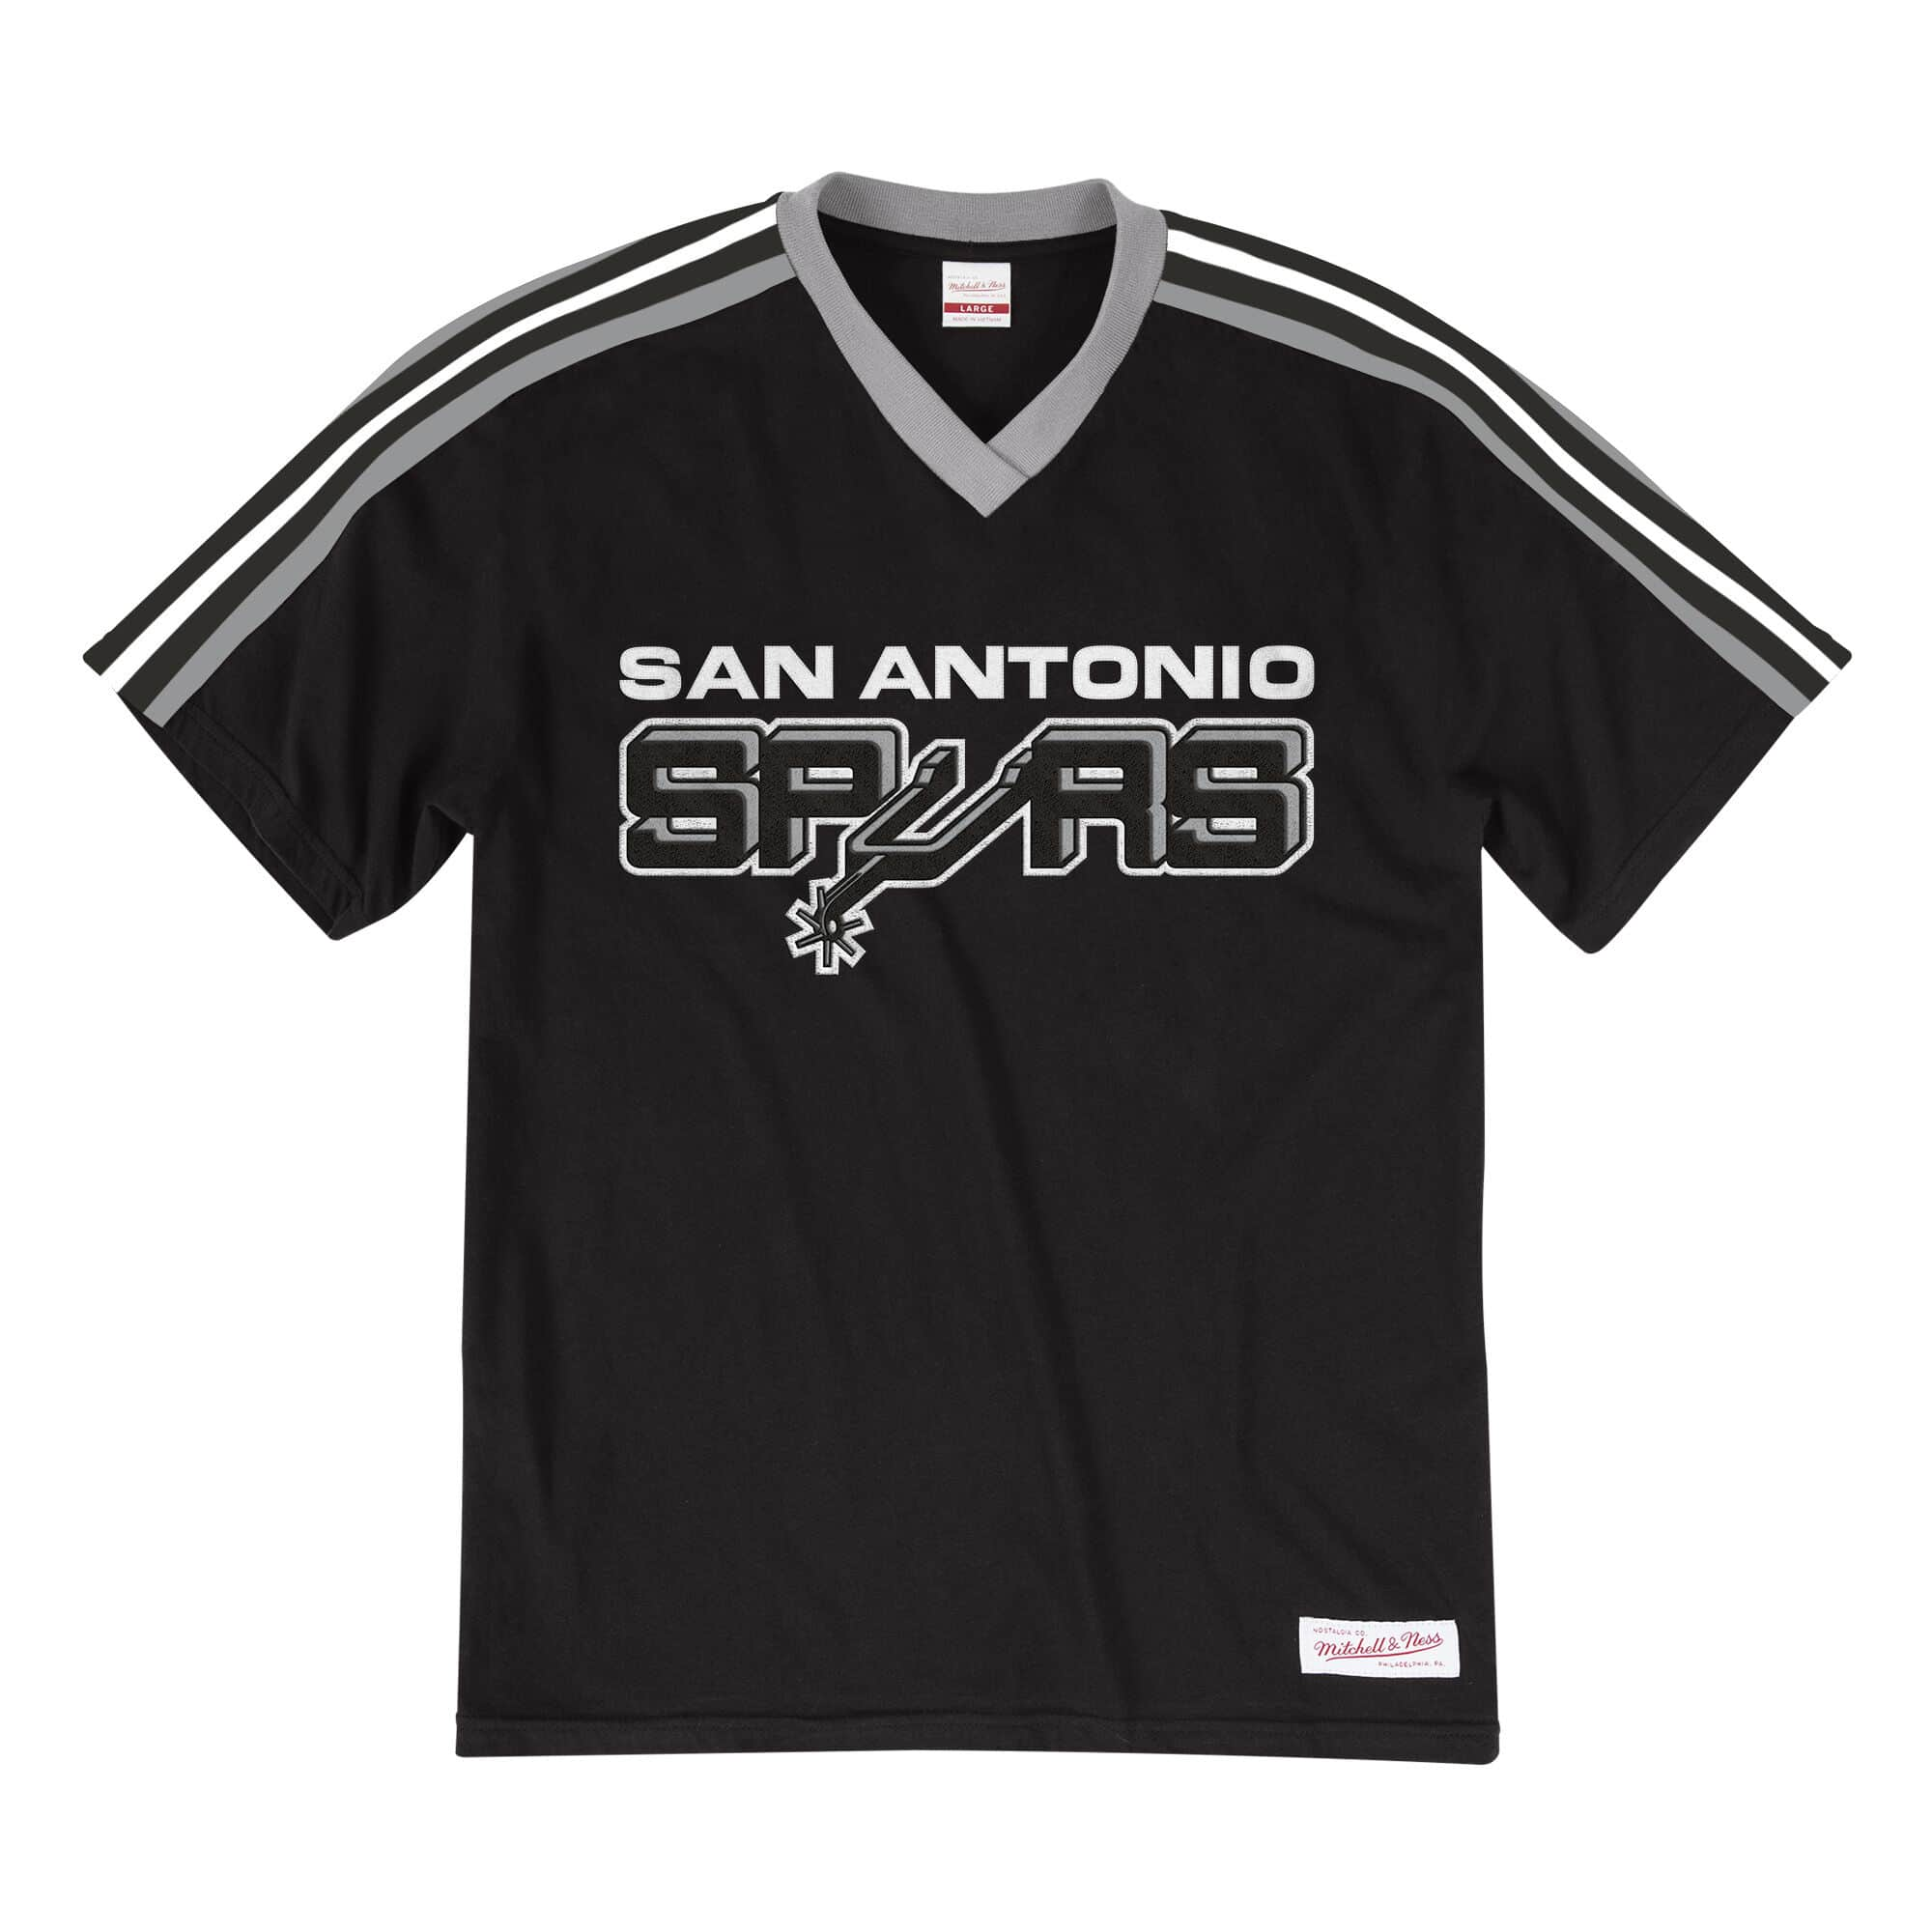 Overtime Win V-Neck Tee San Antonio Spurs